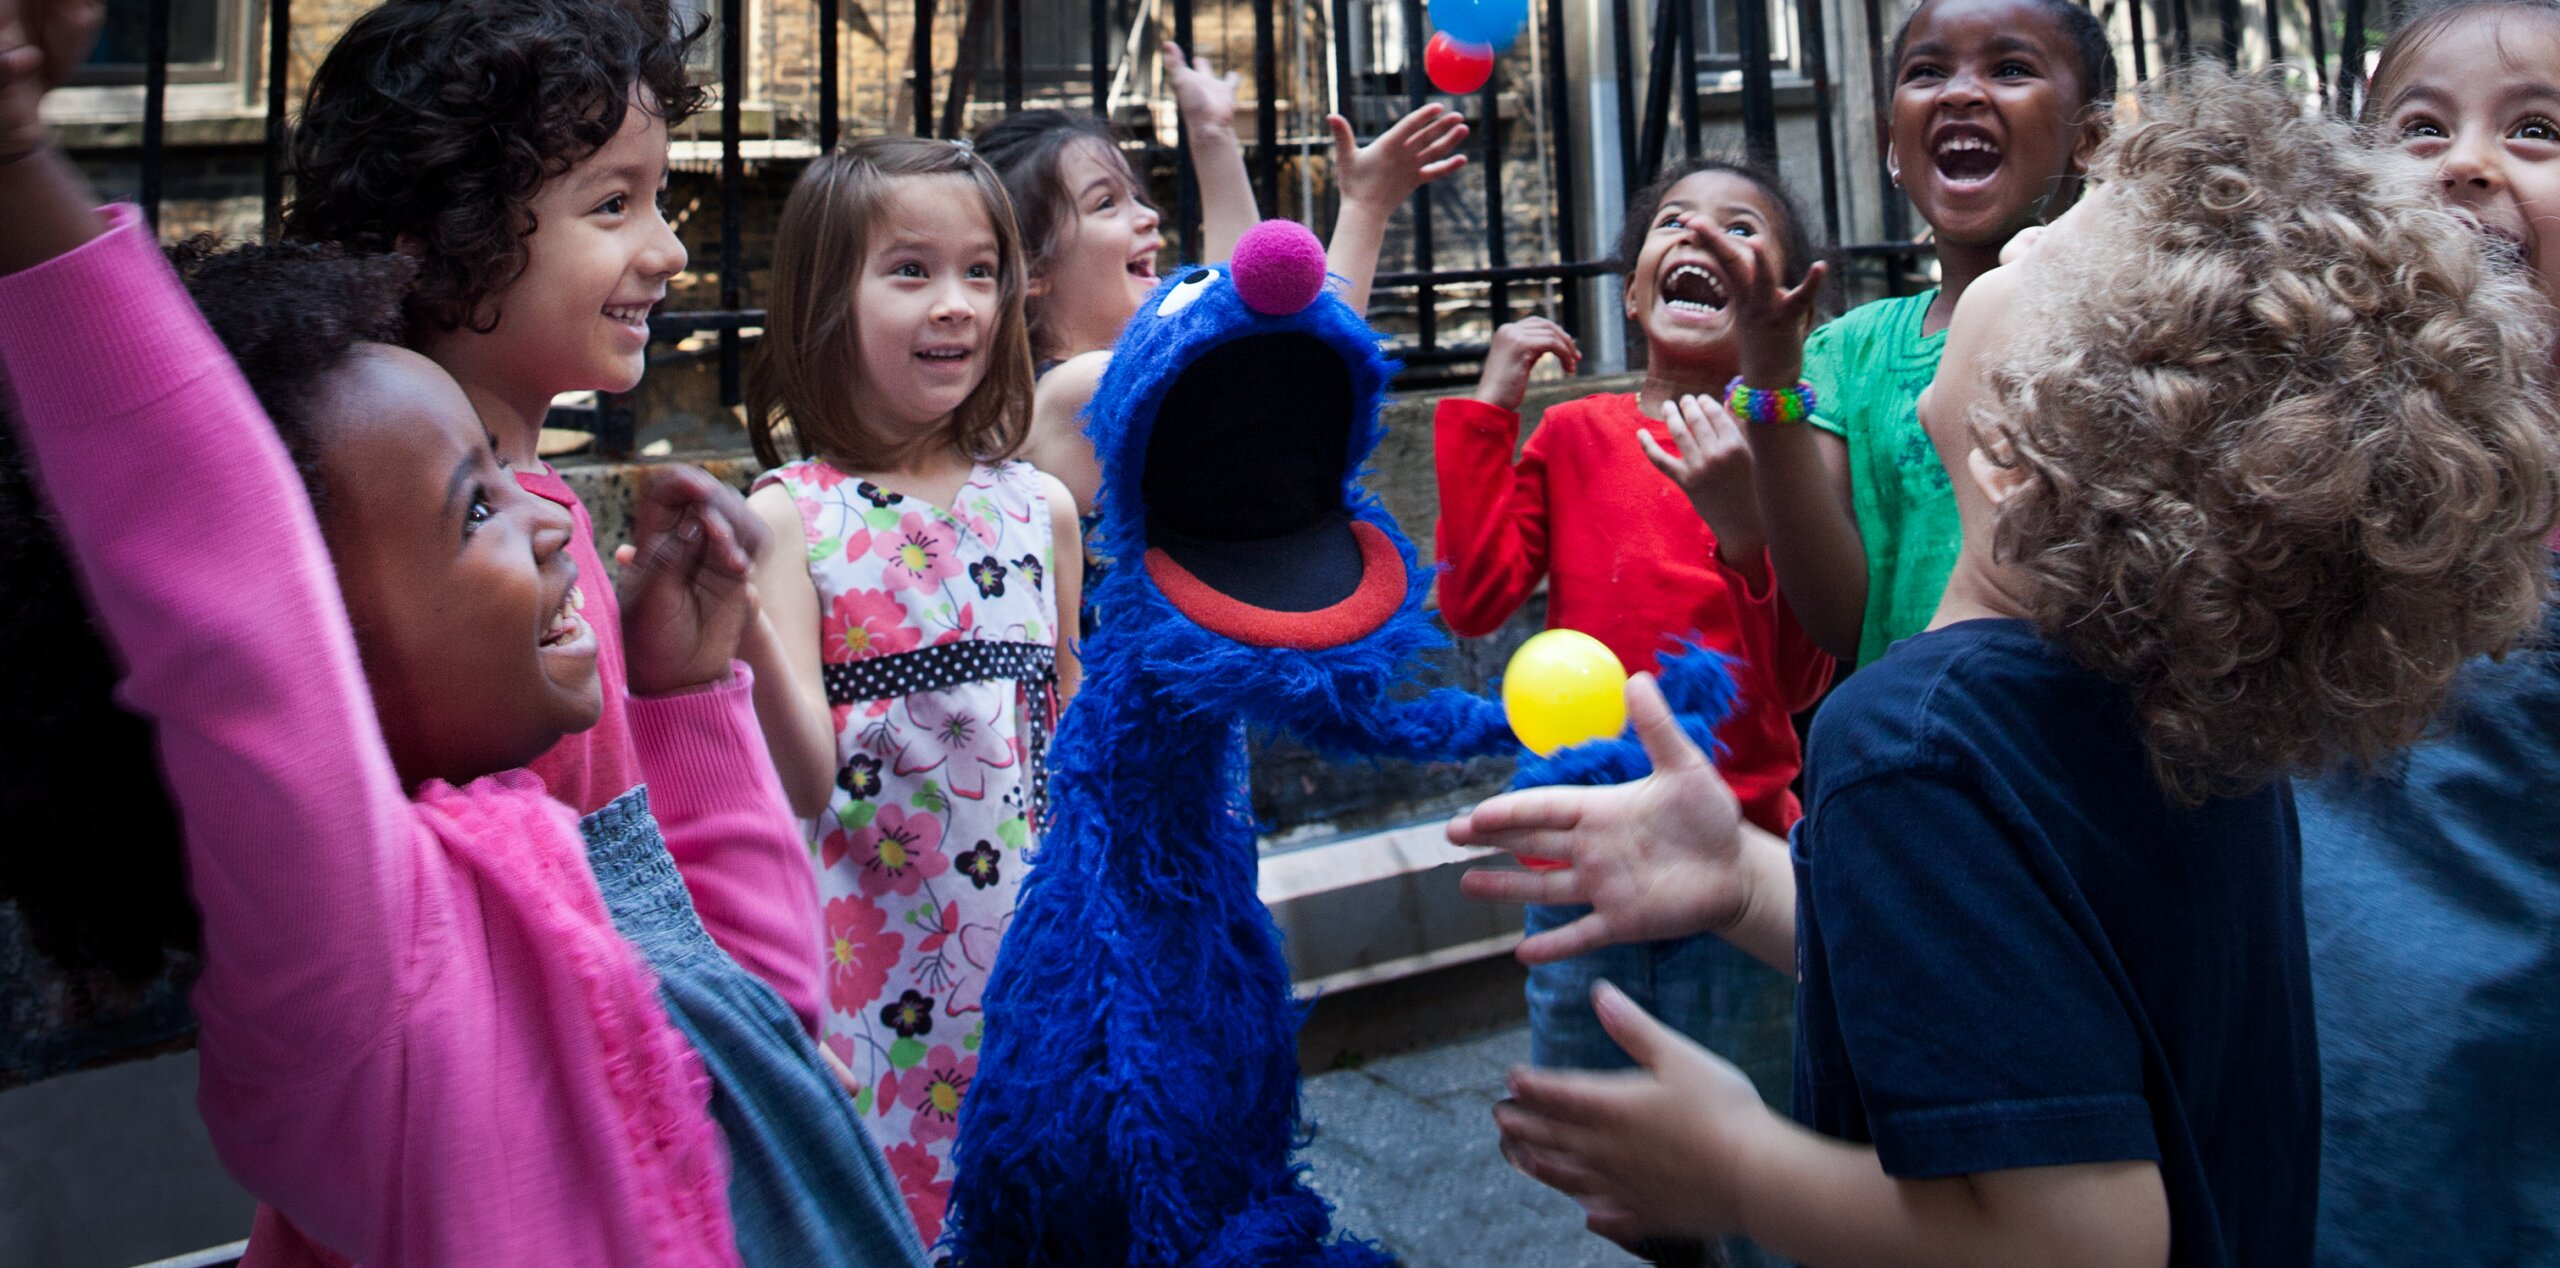 Grover laughs with a group of children outside